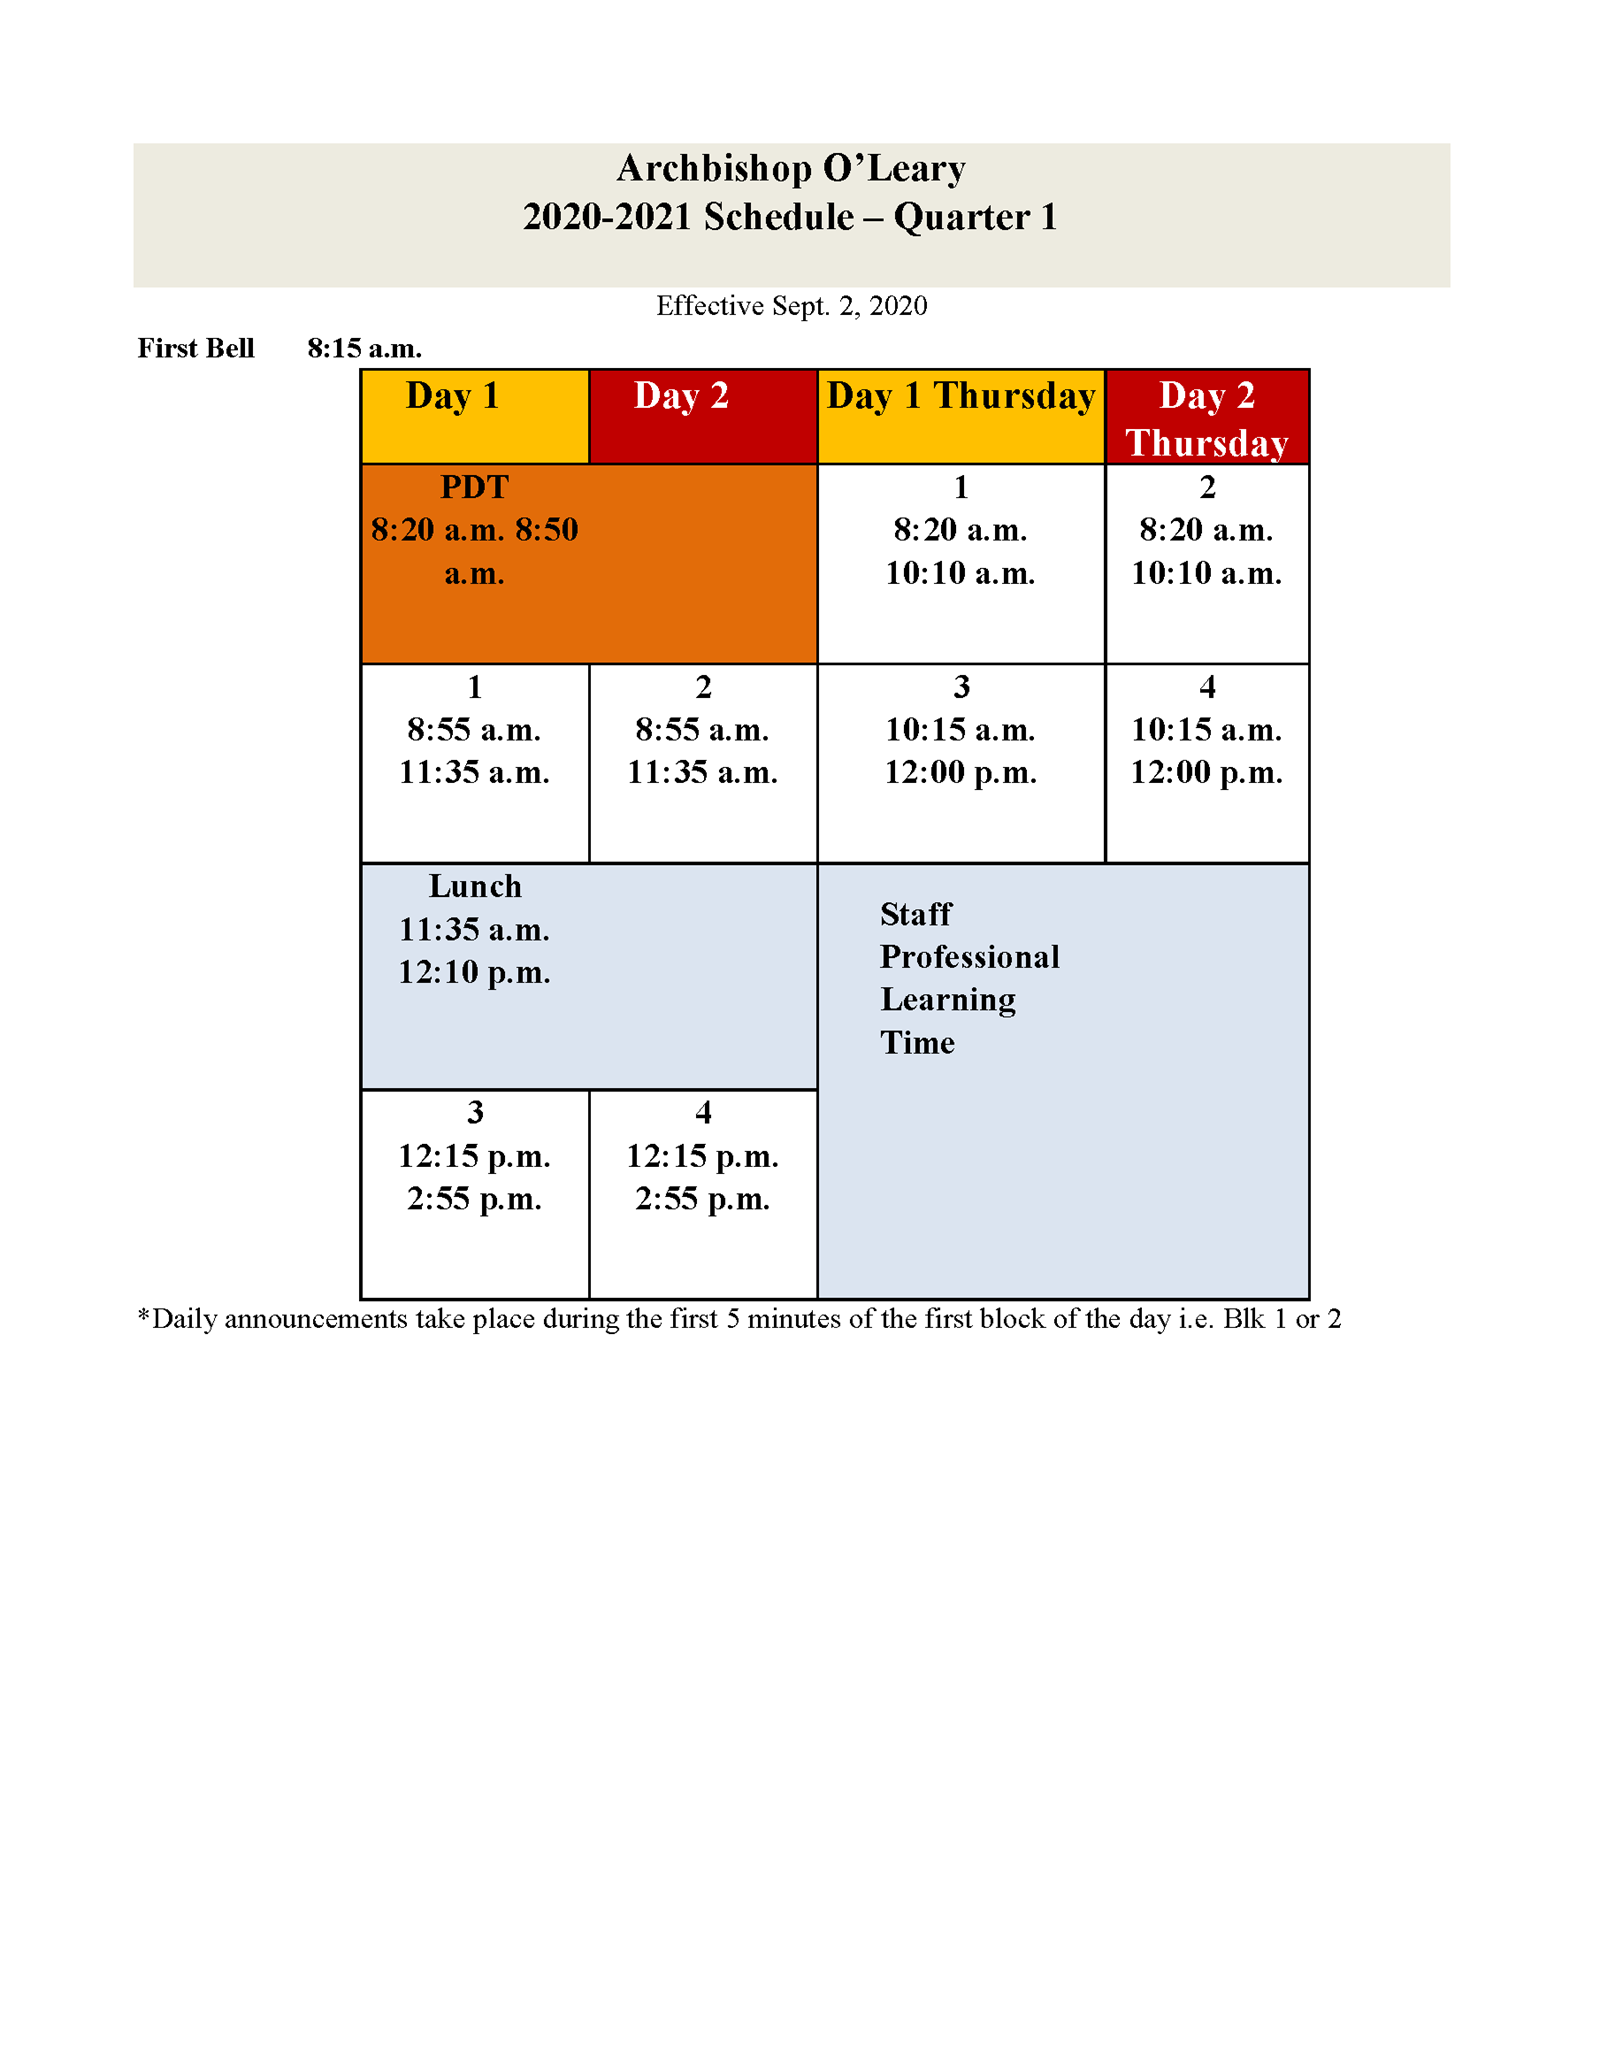 dailySchedule_Page_1.png